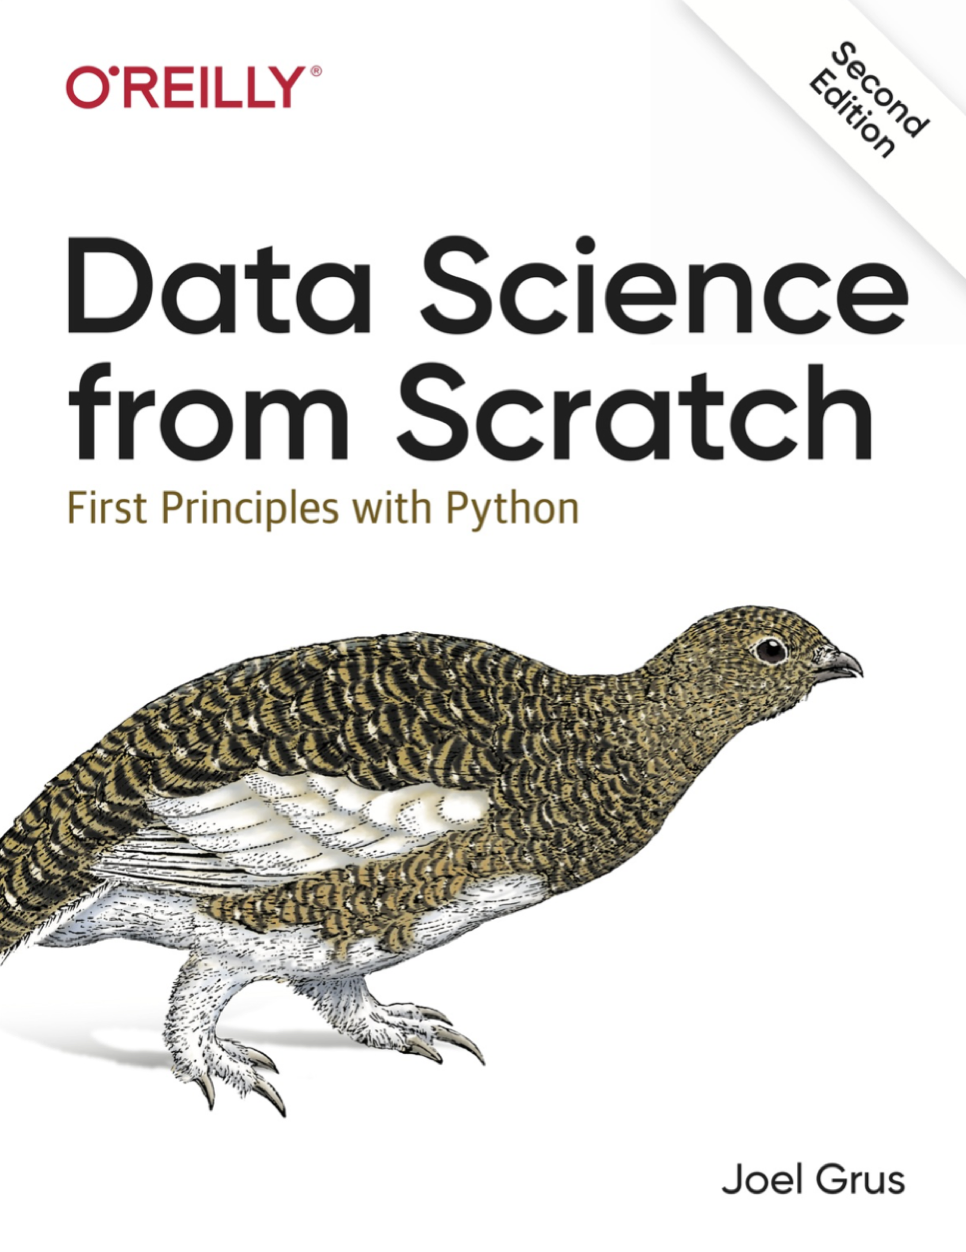 Data Science from Scratch. First Principles with Python at Python.Engineering